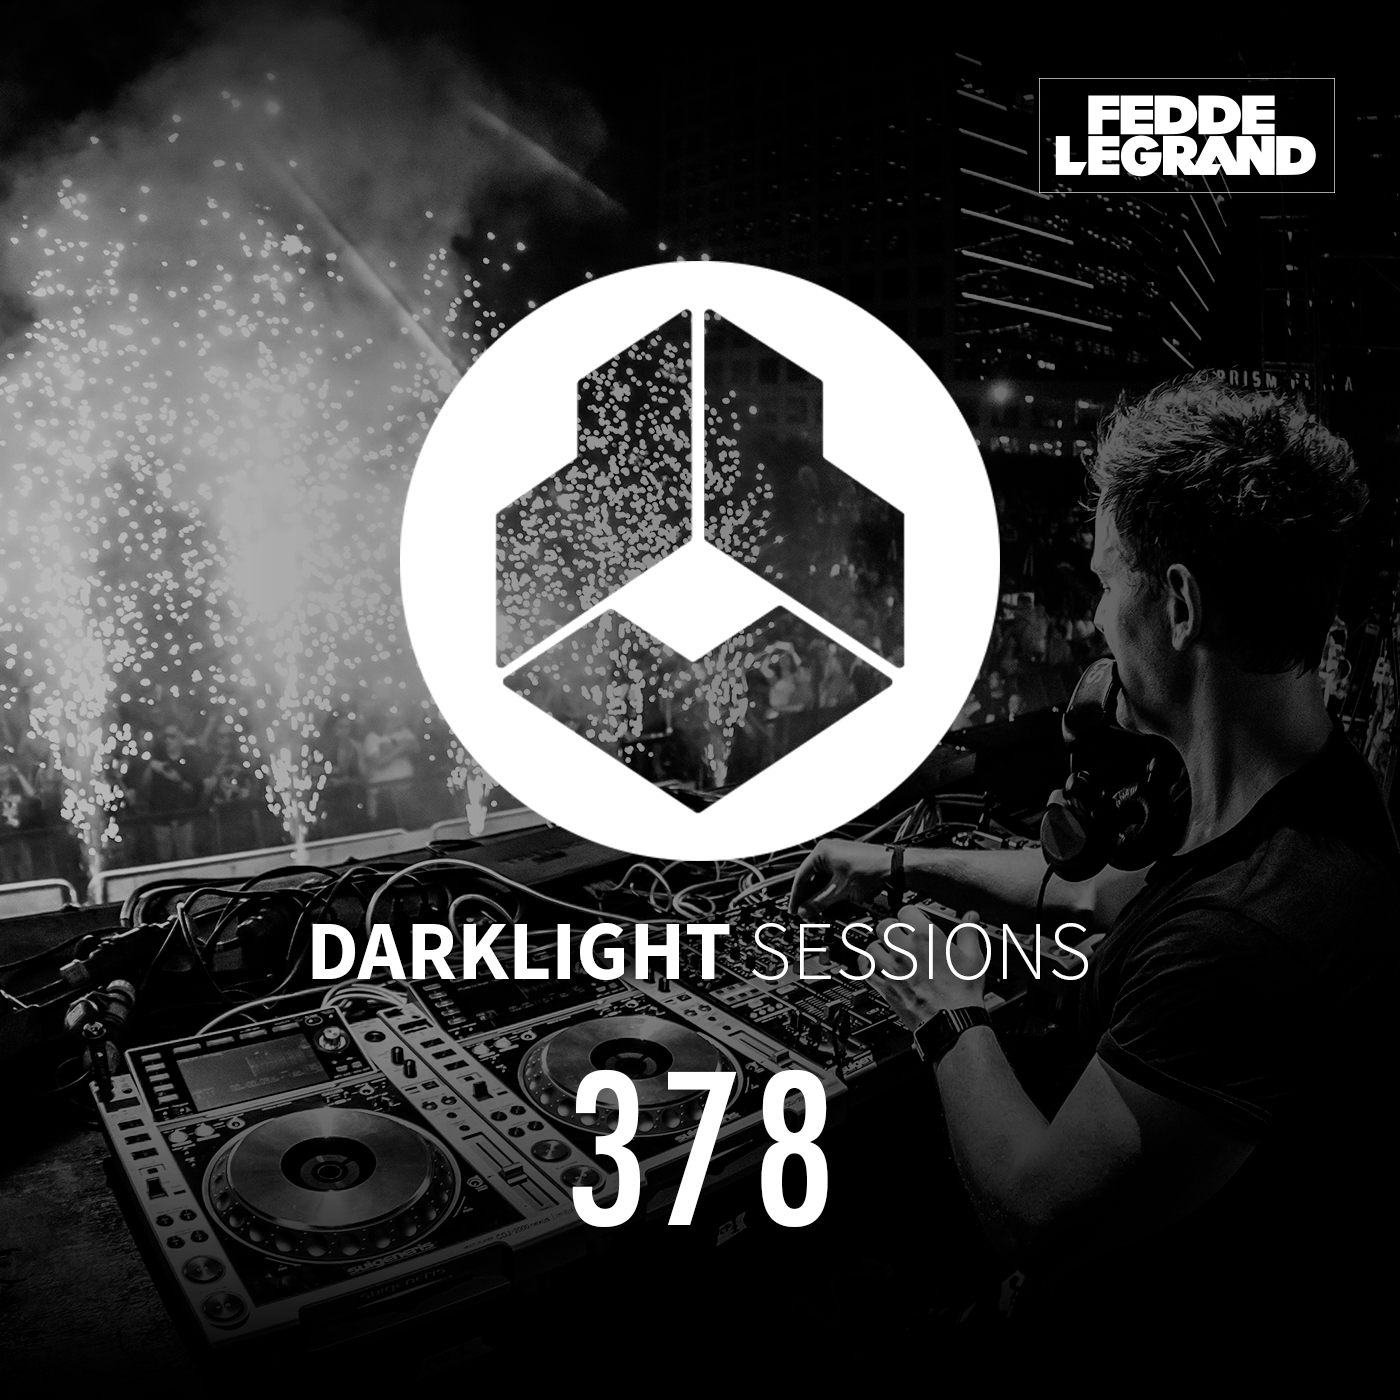 Darklight Sessions 378